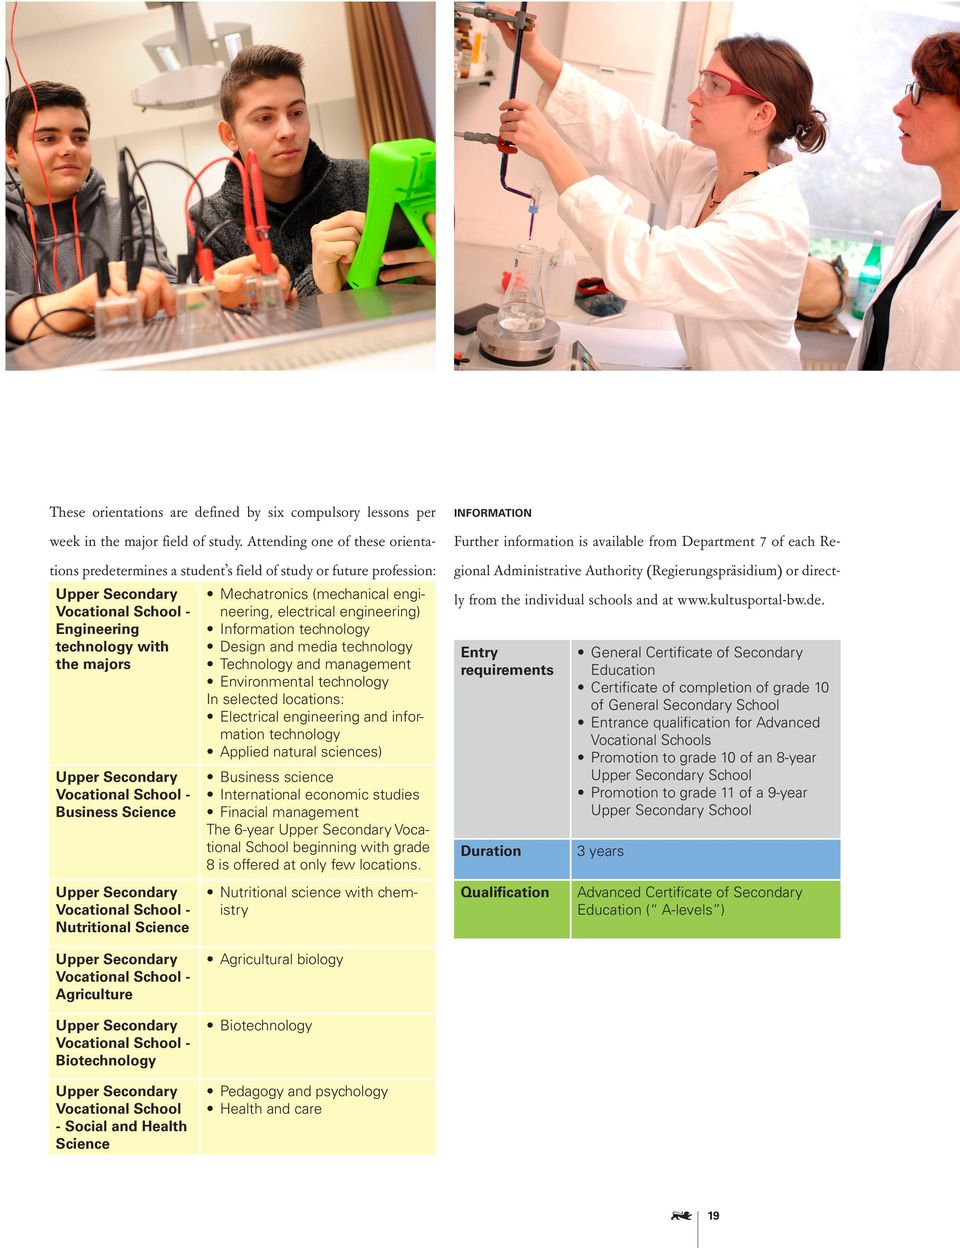 Vocational School - Business Science Upper Secondary Vocational School - Nutritional Science Mechatronics (mechanical engineering, electrical engineering) Information technology Design and media